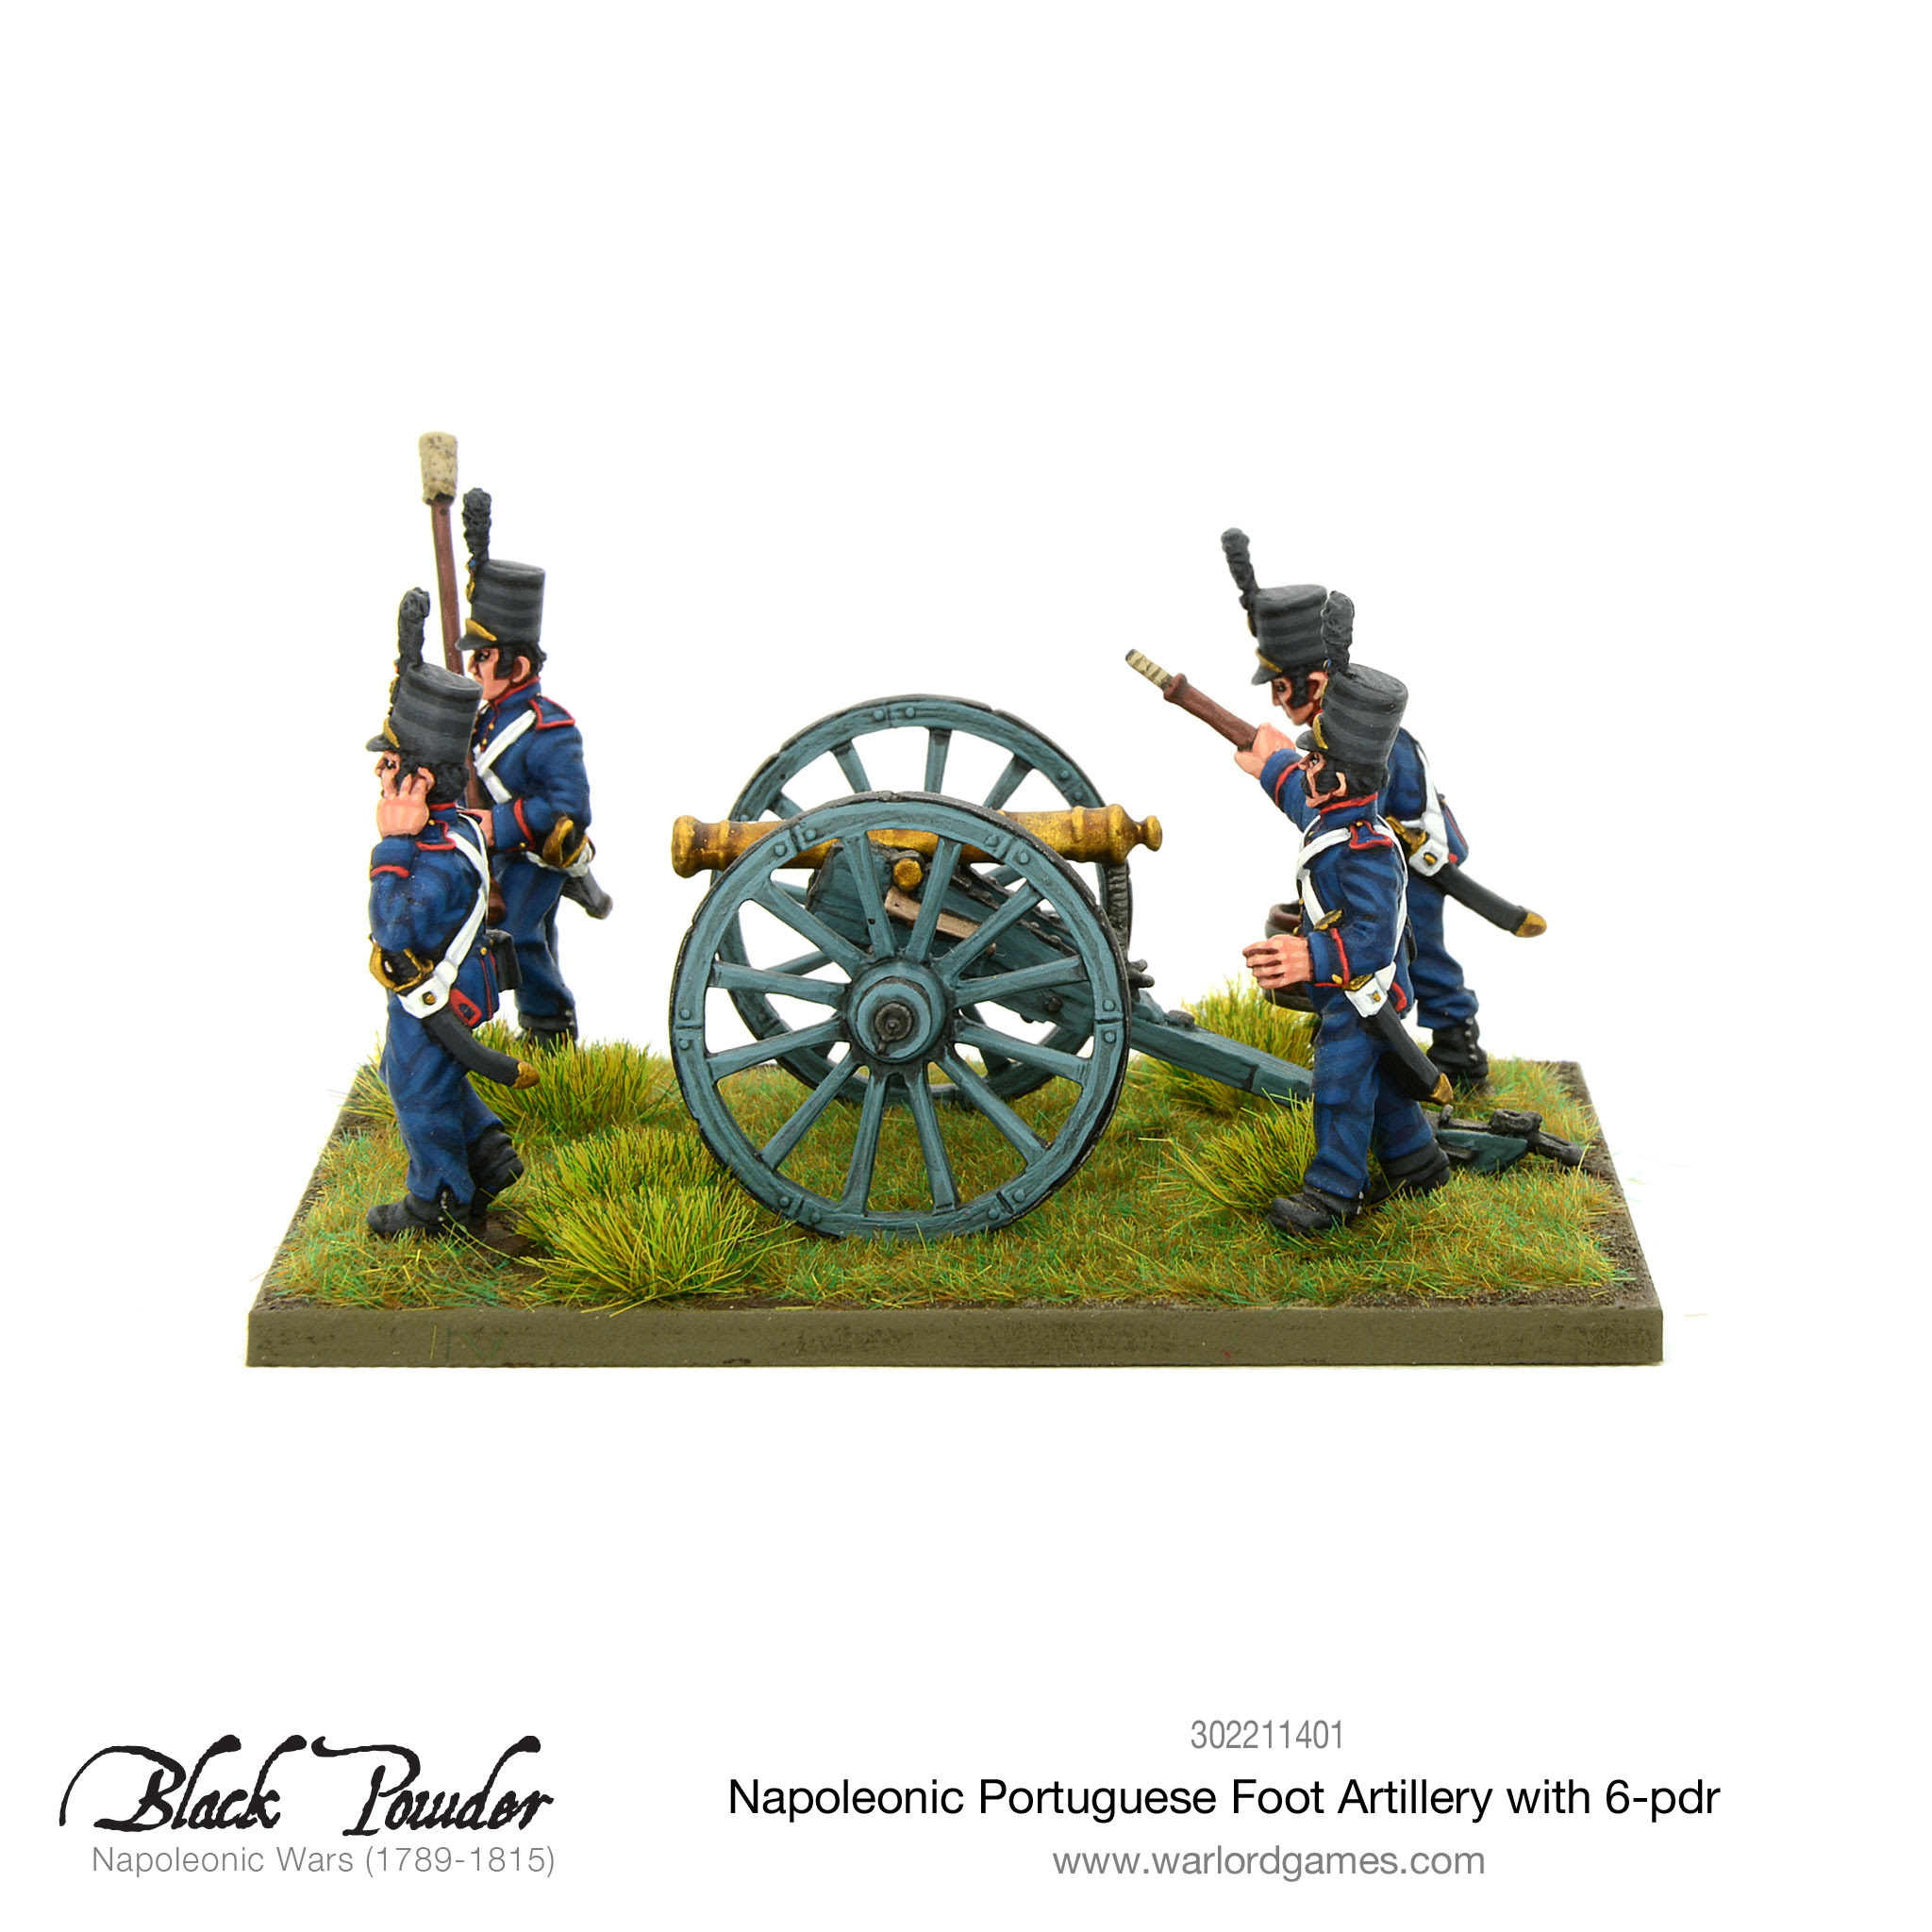 Portuguese foot artillery with 6-pdr